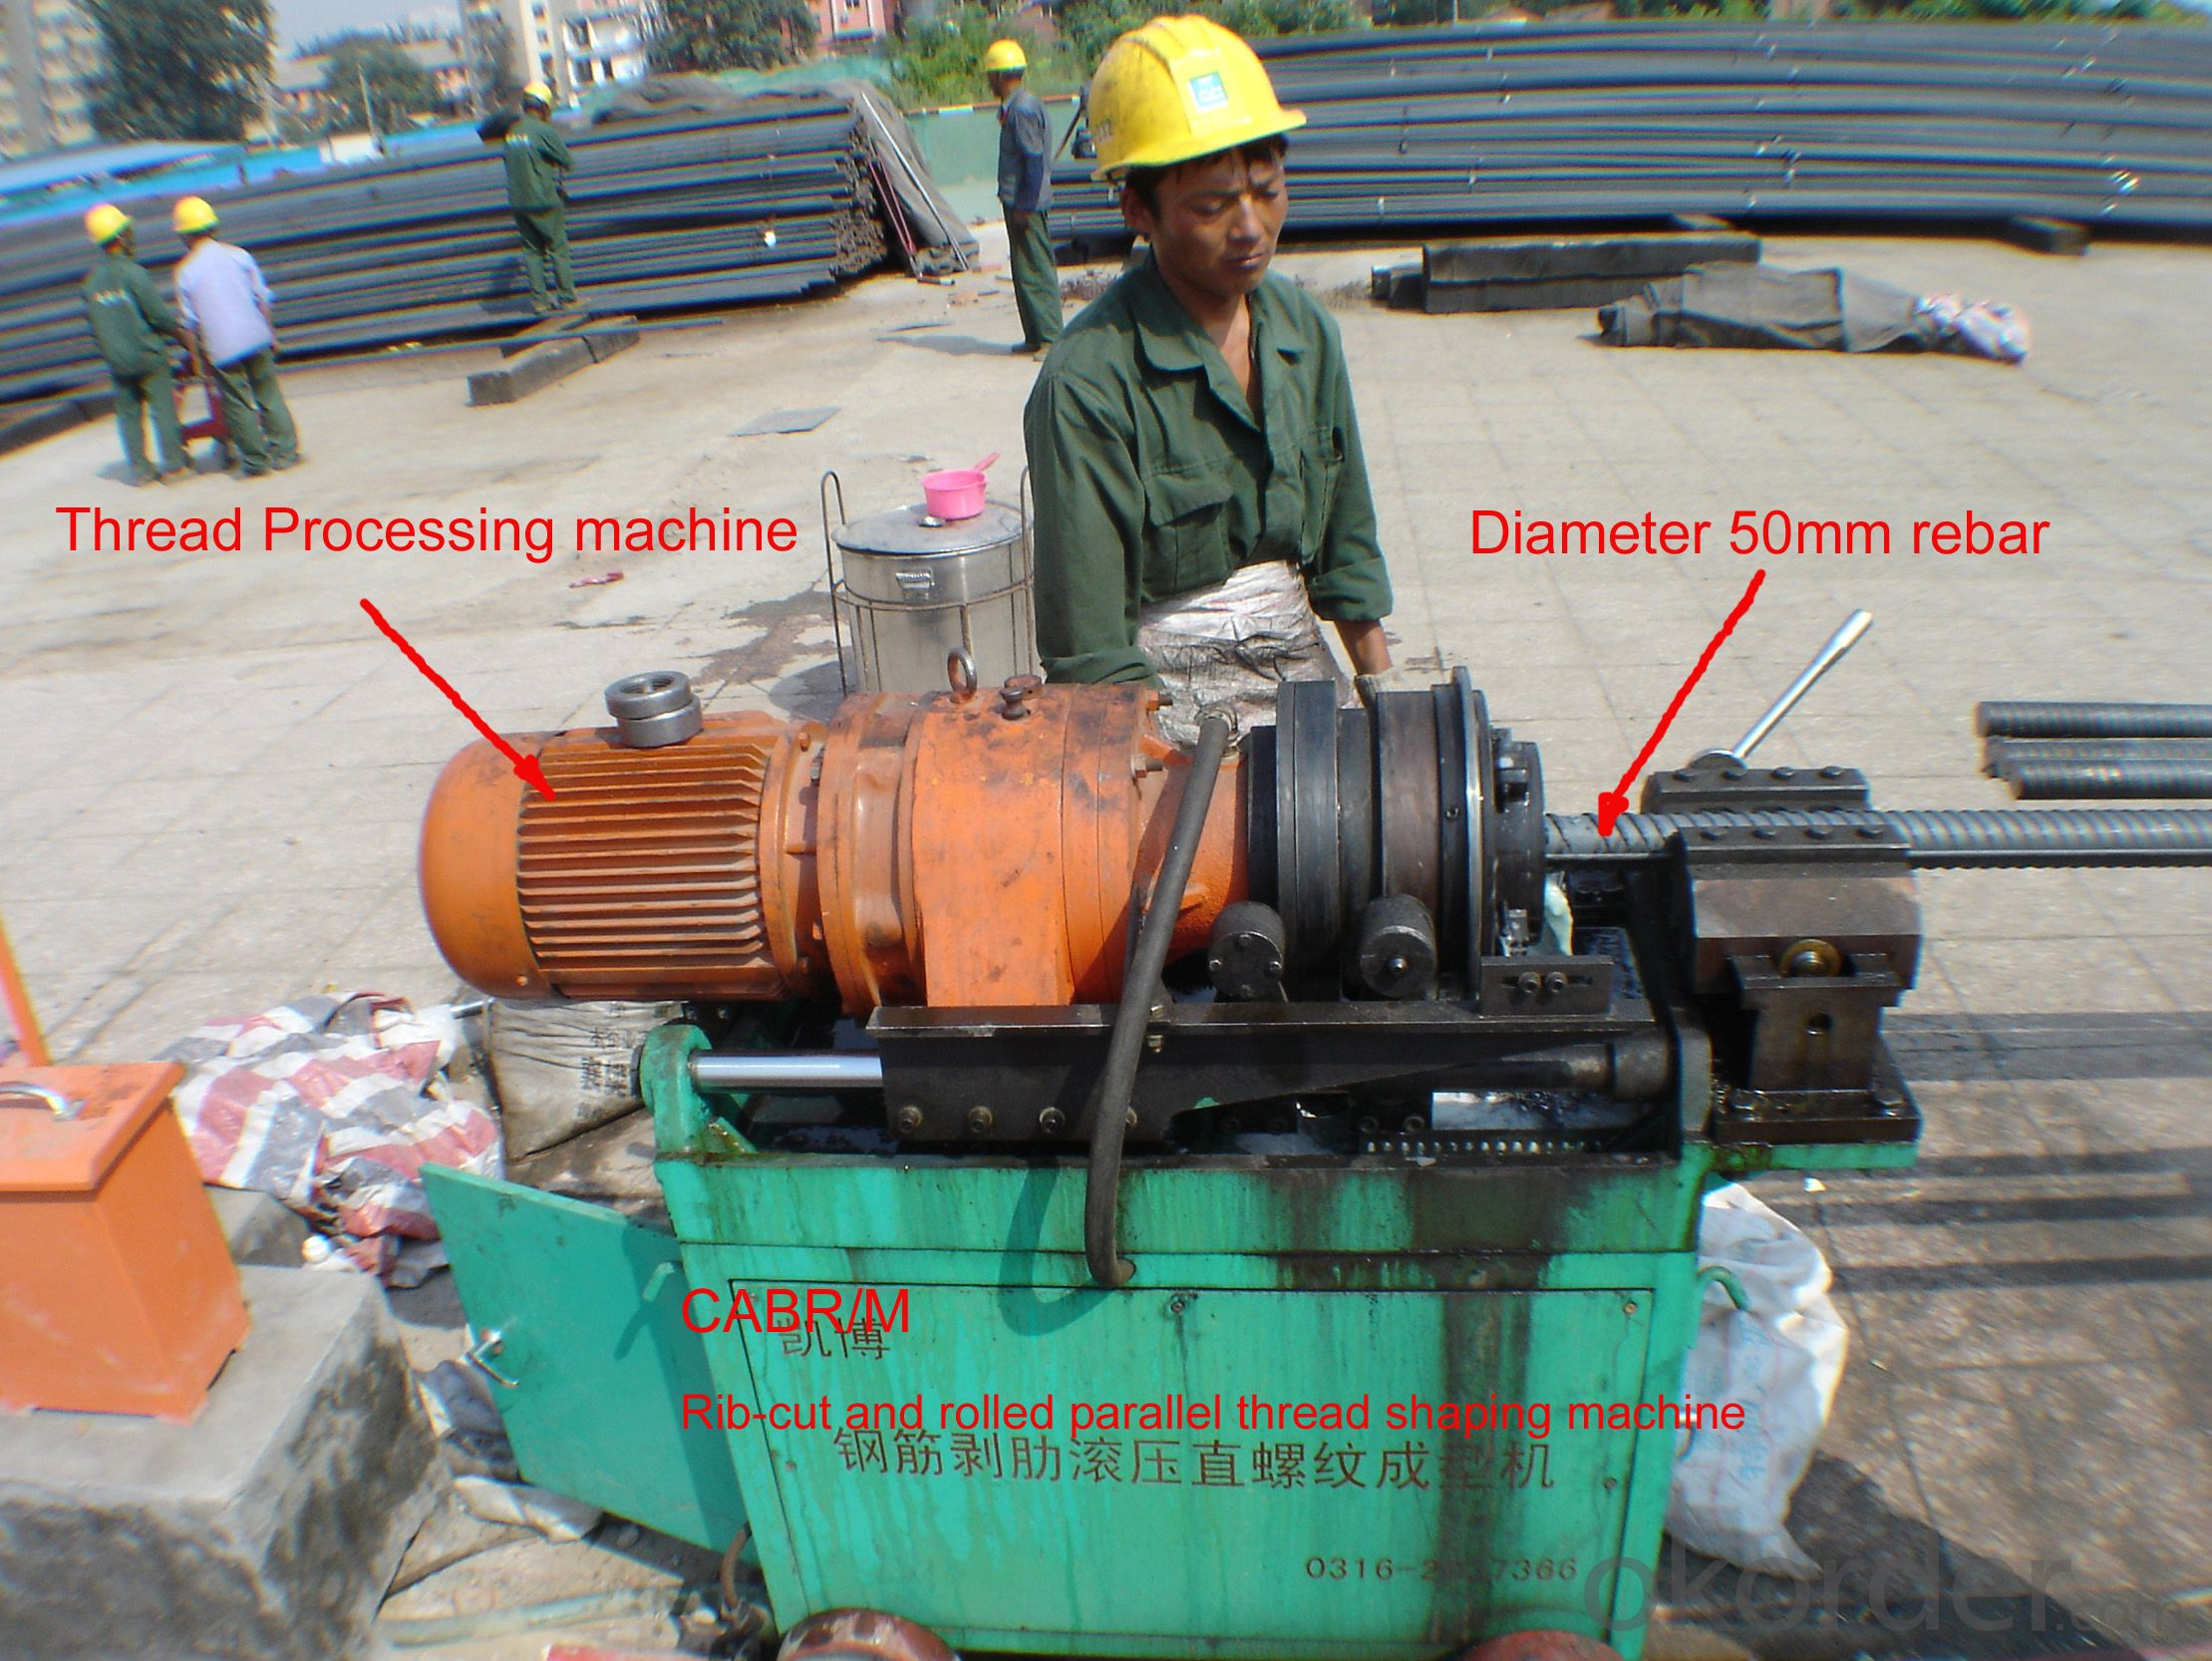 GHB22 Rebar Threading Machine